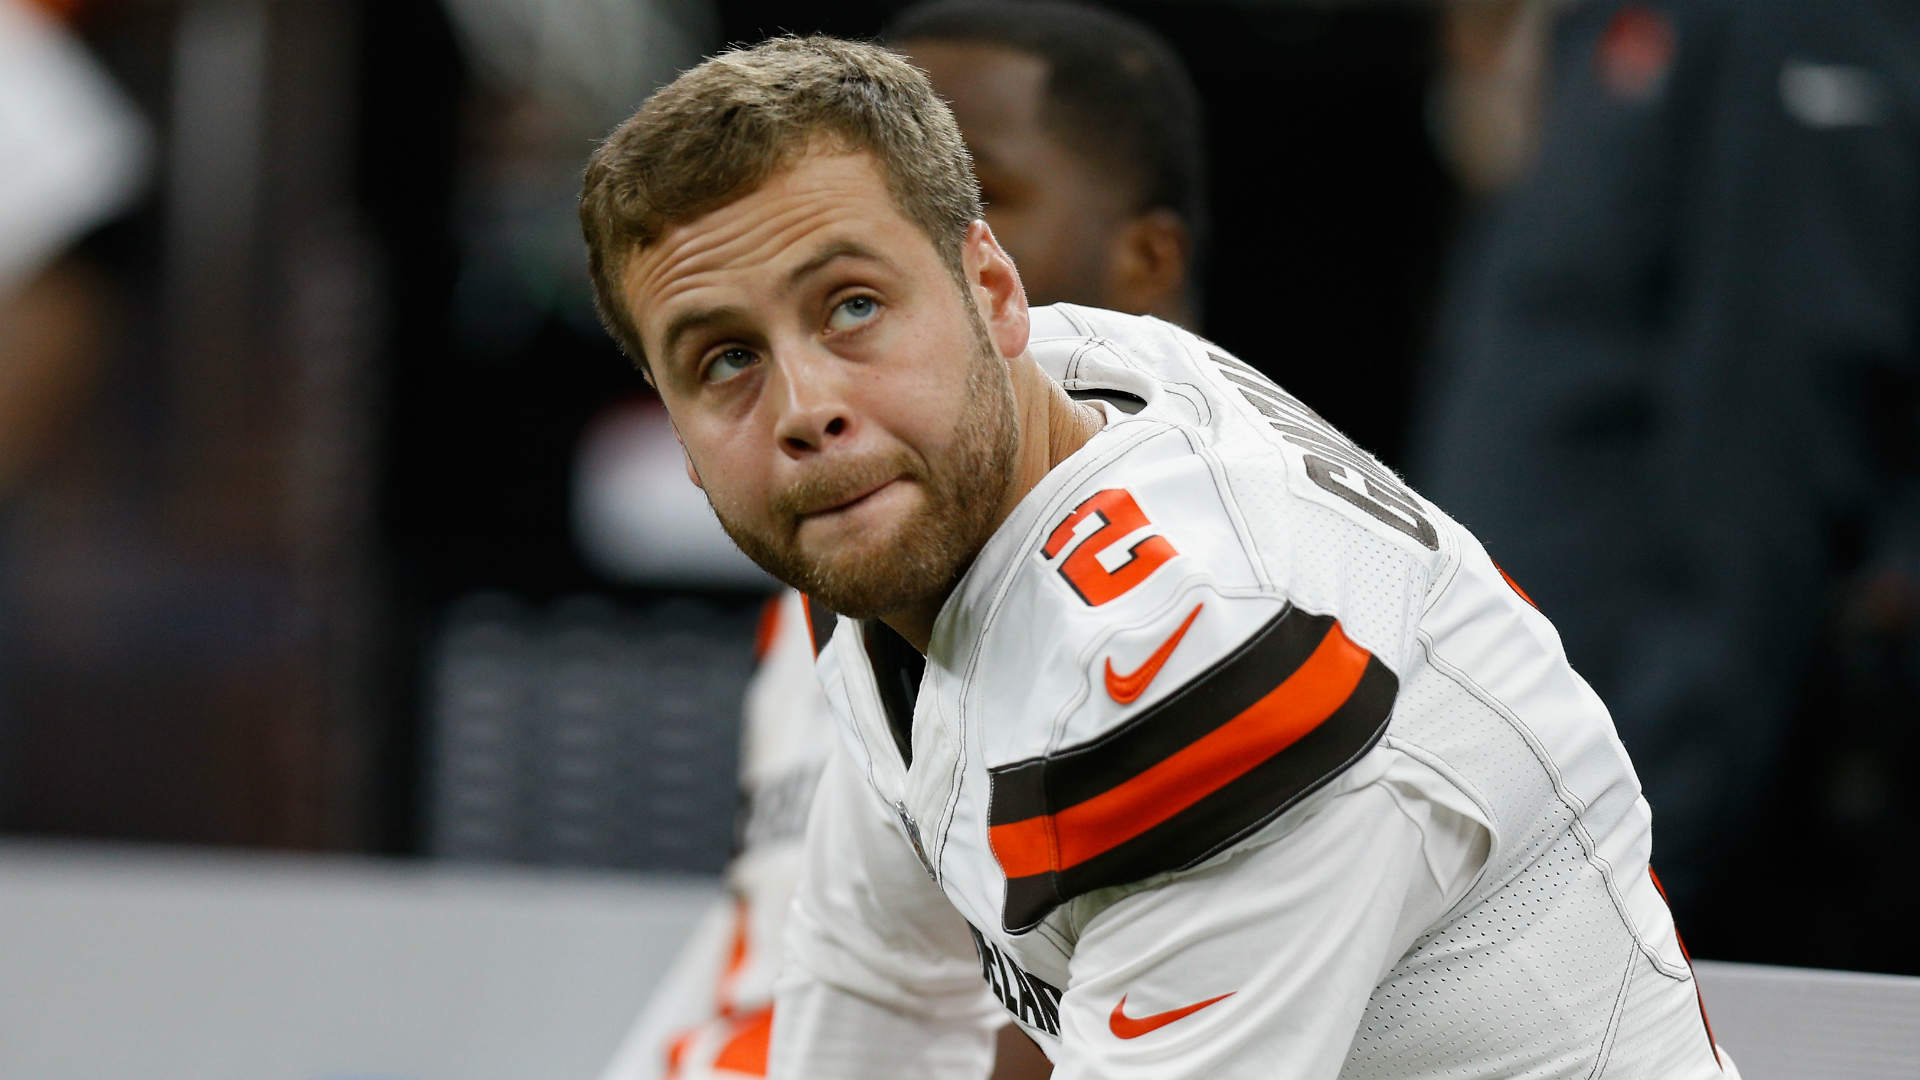 LeBron James Rips Browns' Zane Gonzalez After Brutal Game